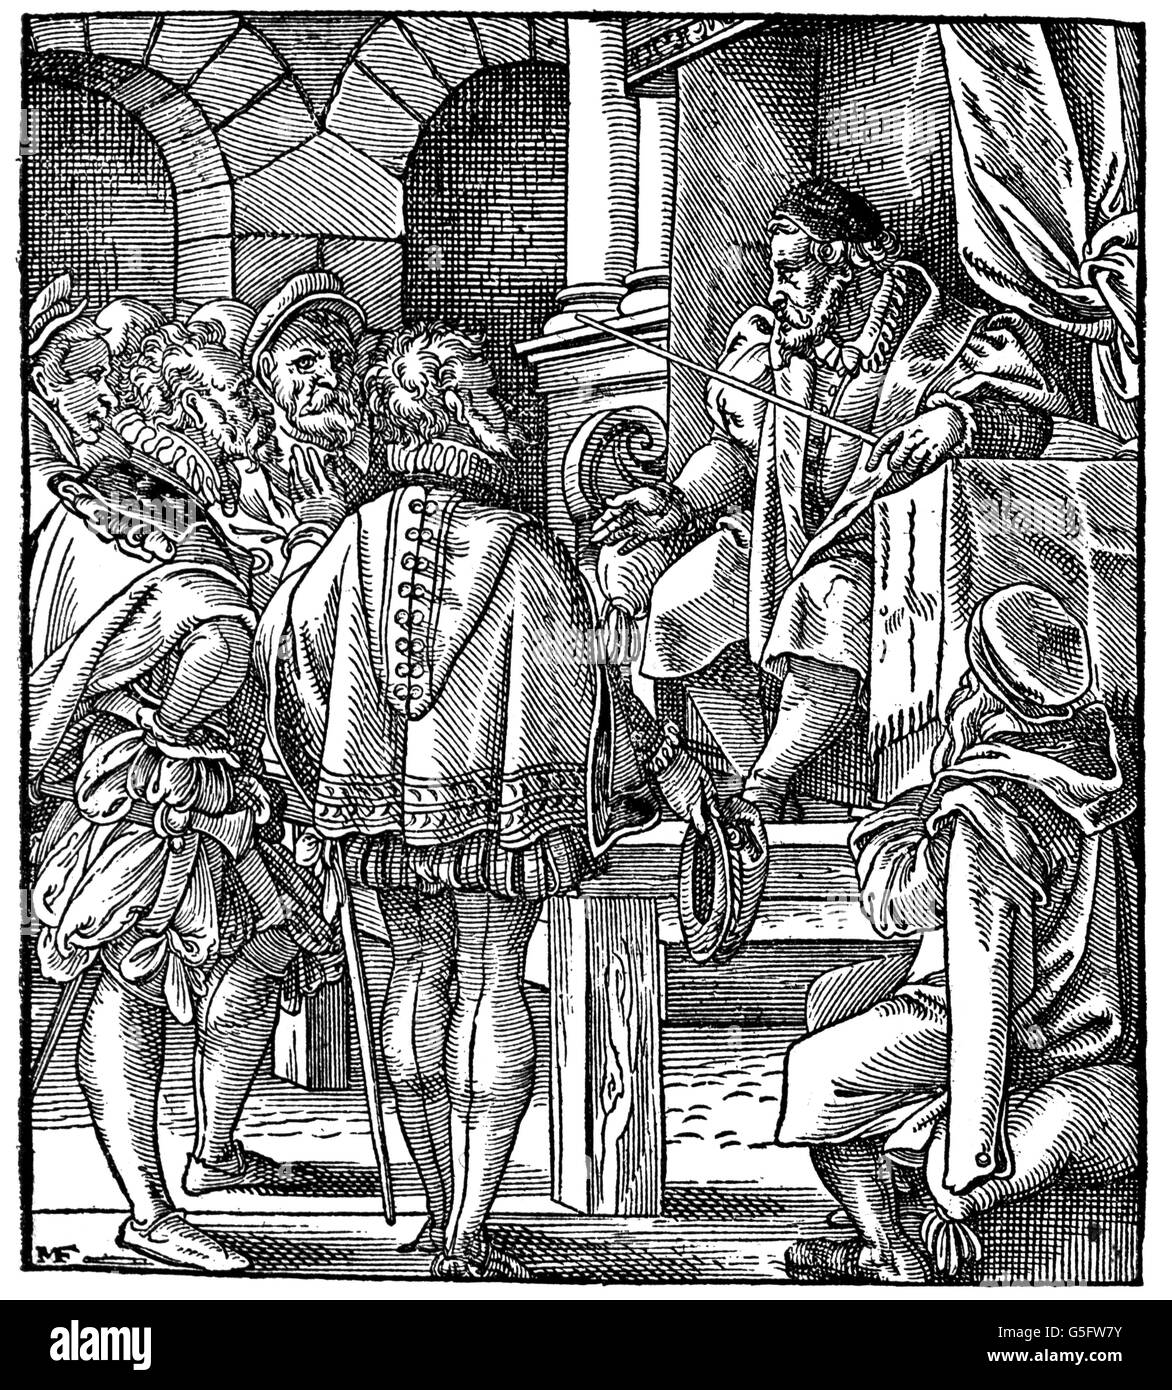 justice, judges, mayor and judge, woodcut, 16th century, 16th century, graphic, graphics, jurisdiction, court of - Stock Image